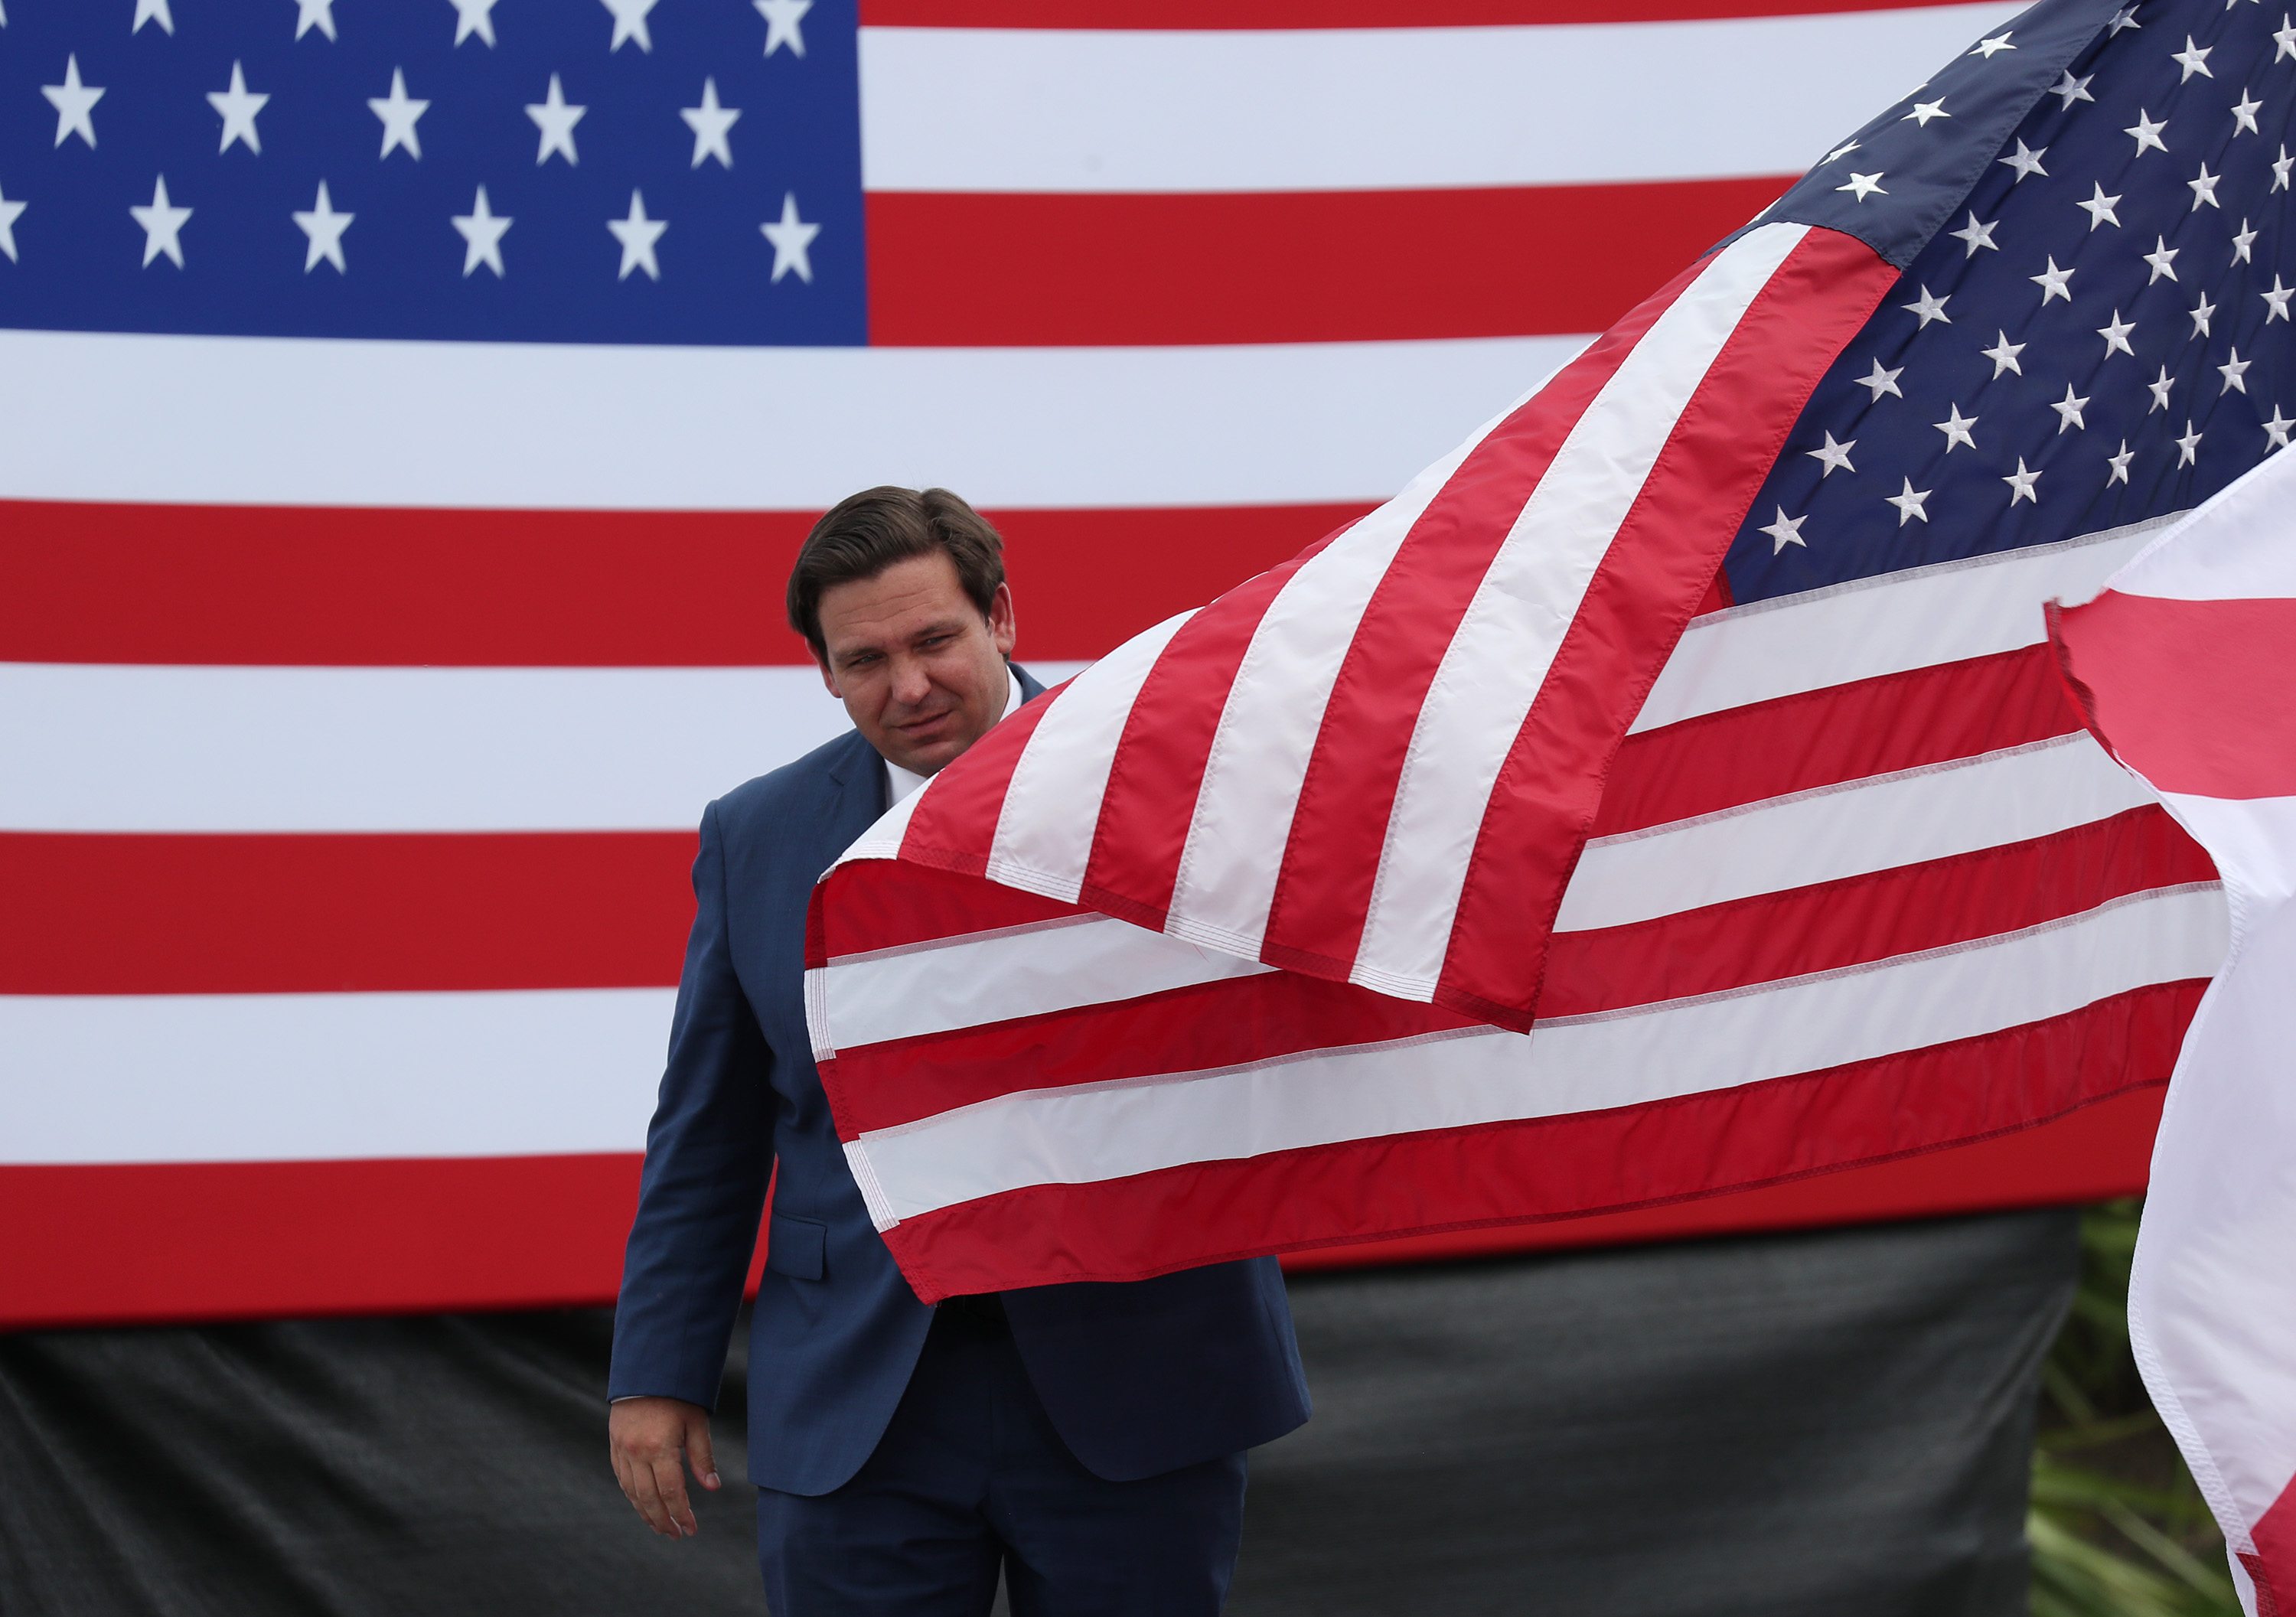 Florida's Ron DeSantis Leads Marco Rubio, Rick Scott by 50% in 2024 GOP Primary Poll